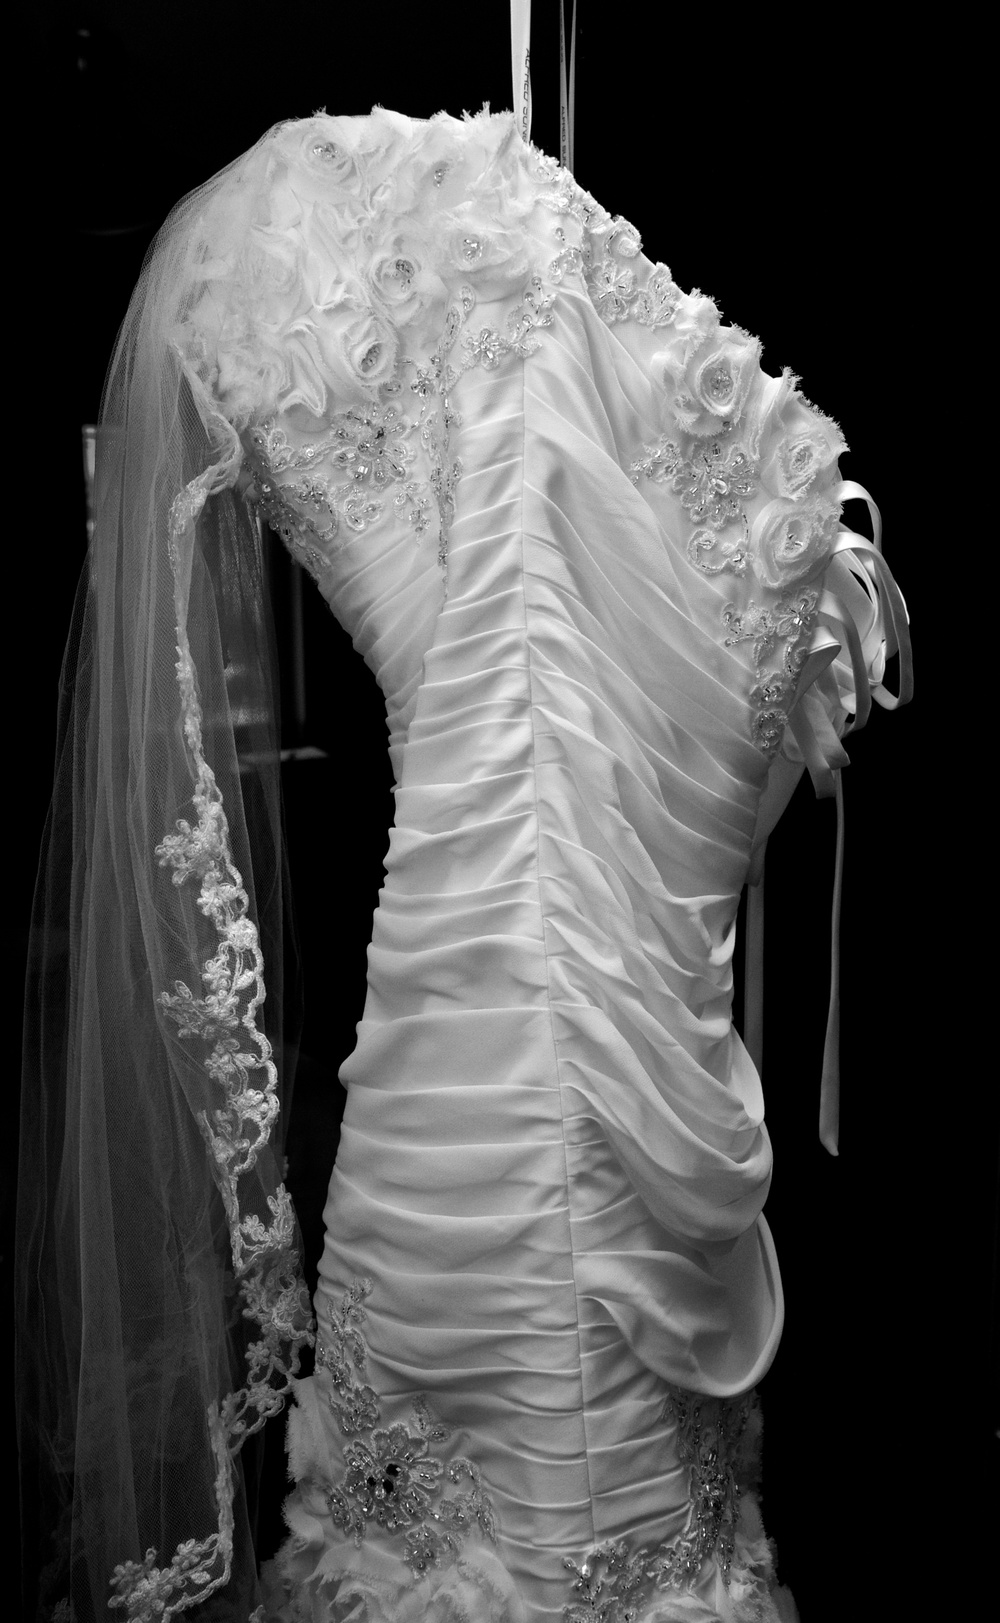 The Dress hangs ghostly, waiting to be animated.  Canon EOS 7D EF-S 17-55mm at 17mm f/4.5 1/60 ISO 800.  Flash bounced off the ceiling at -.667 ev